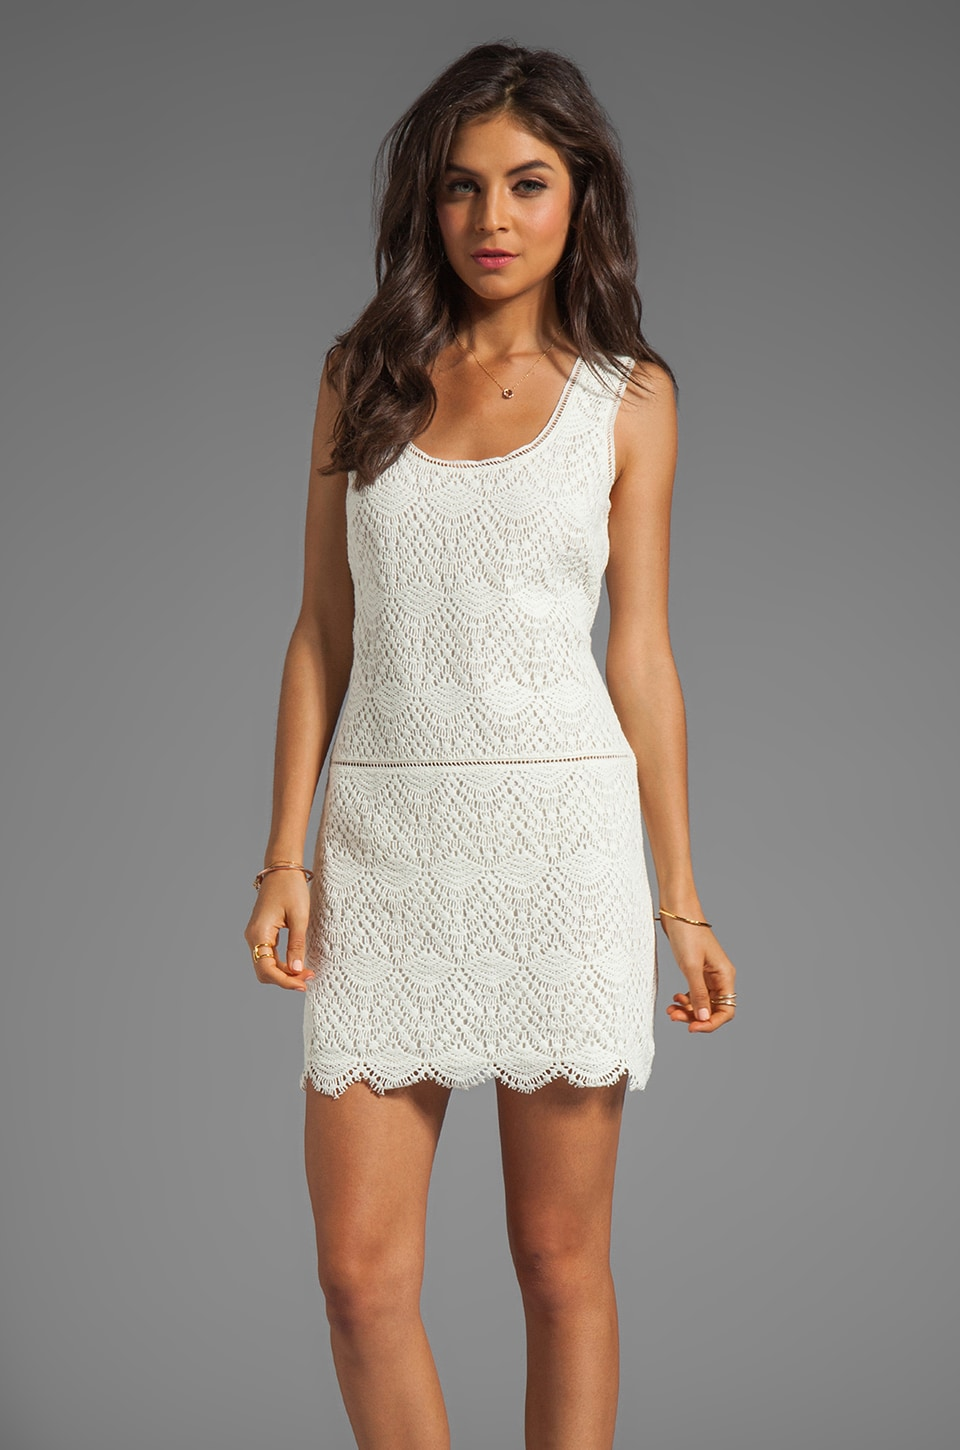 Juicy Couture Crochet Lace Tank Dress in Pitch White